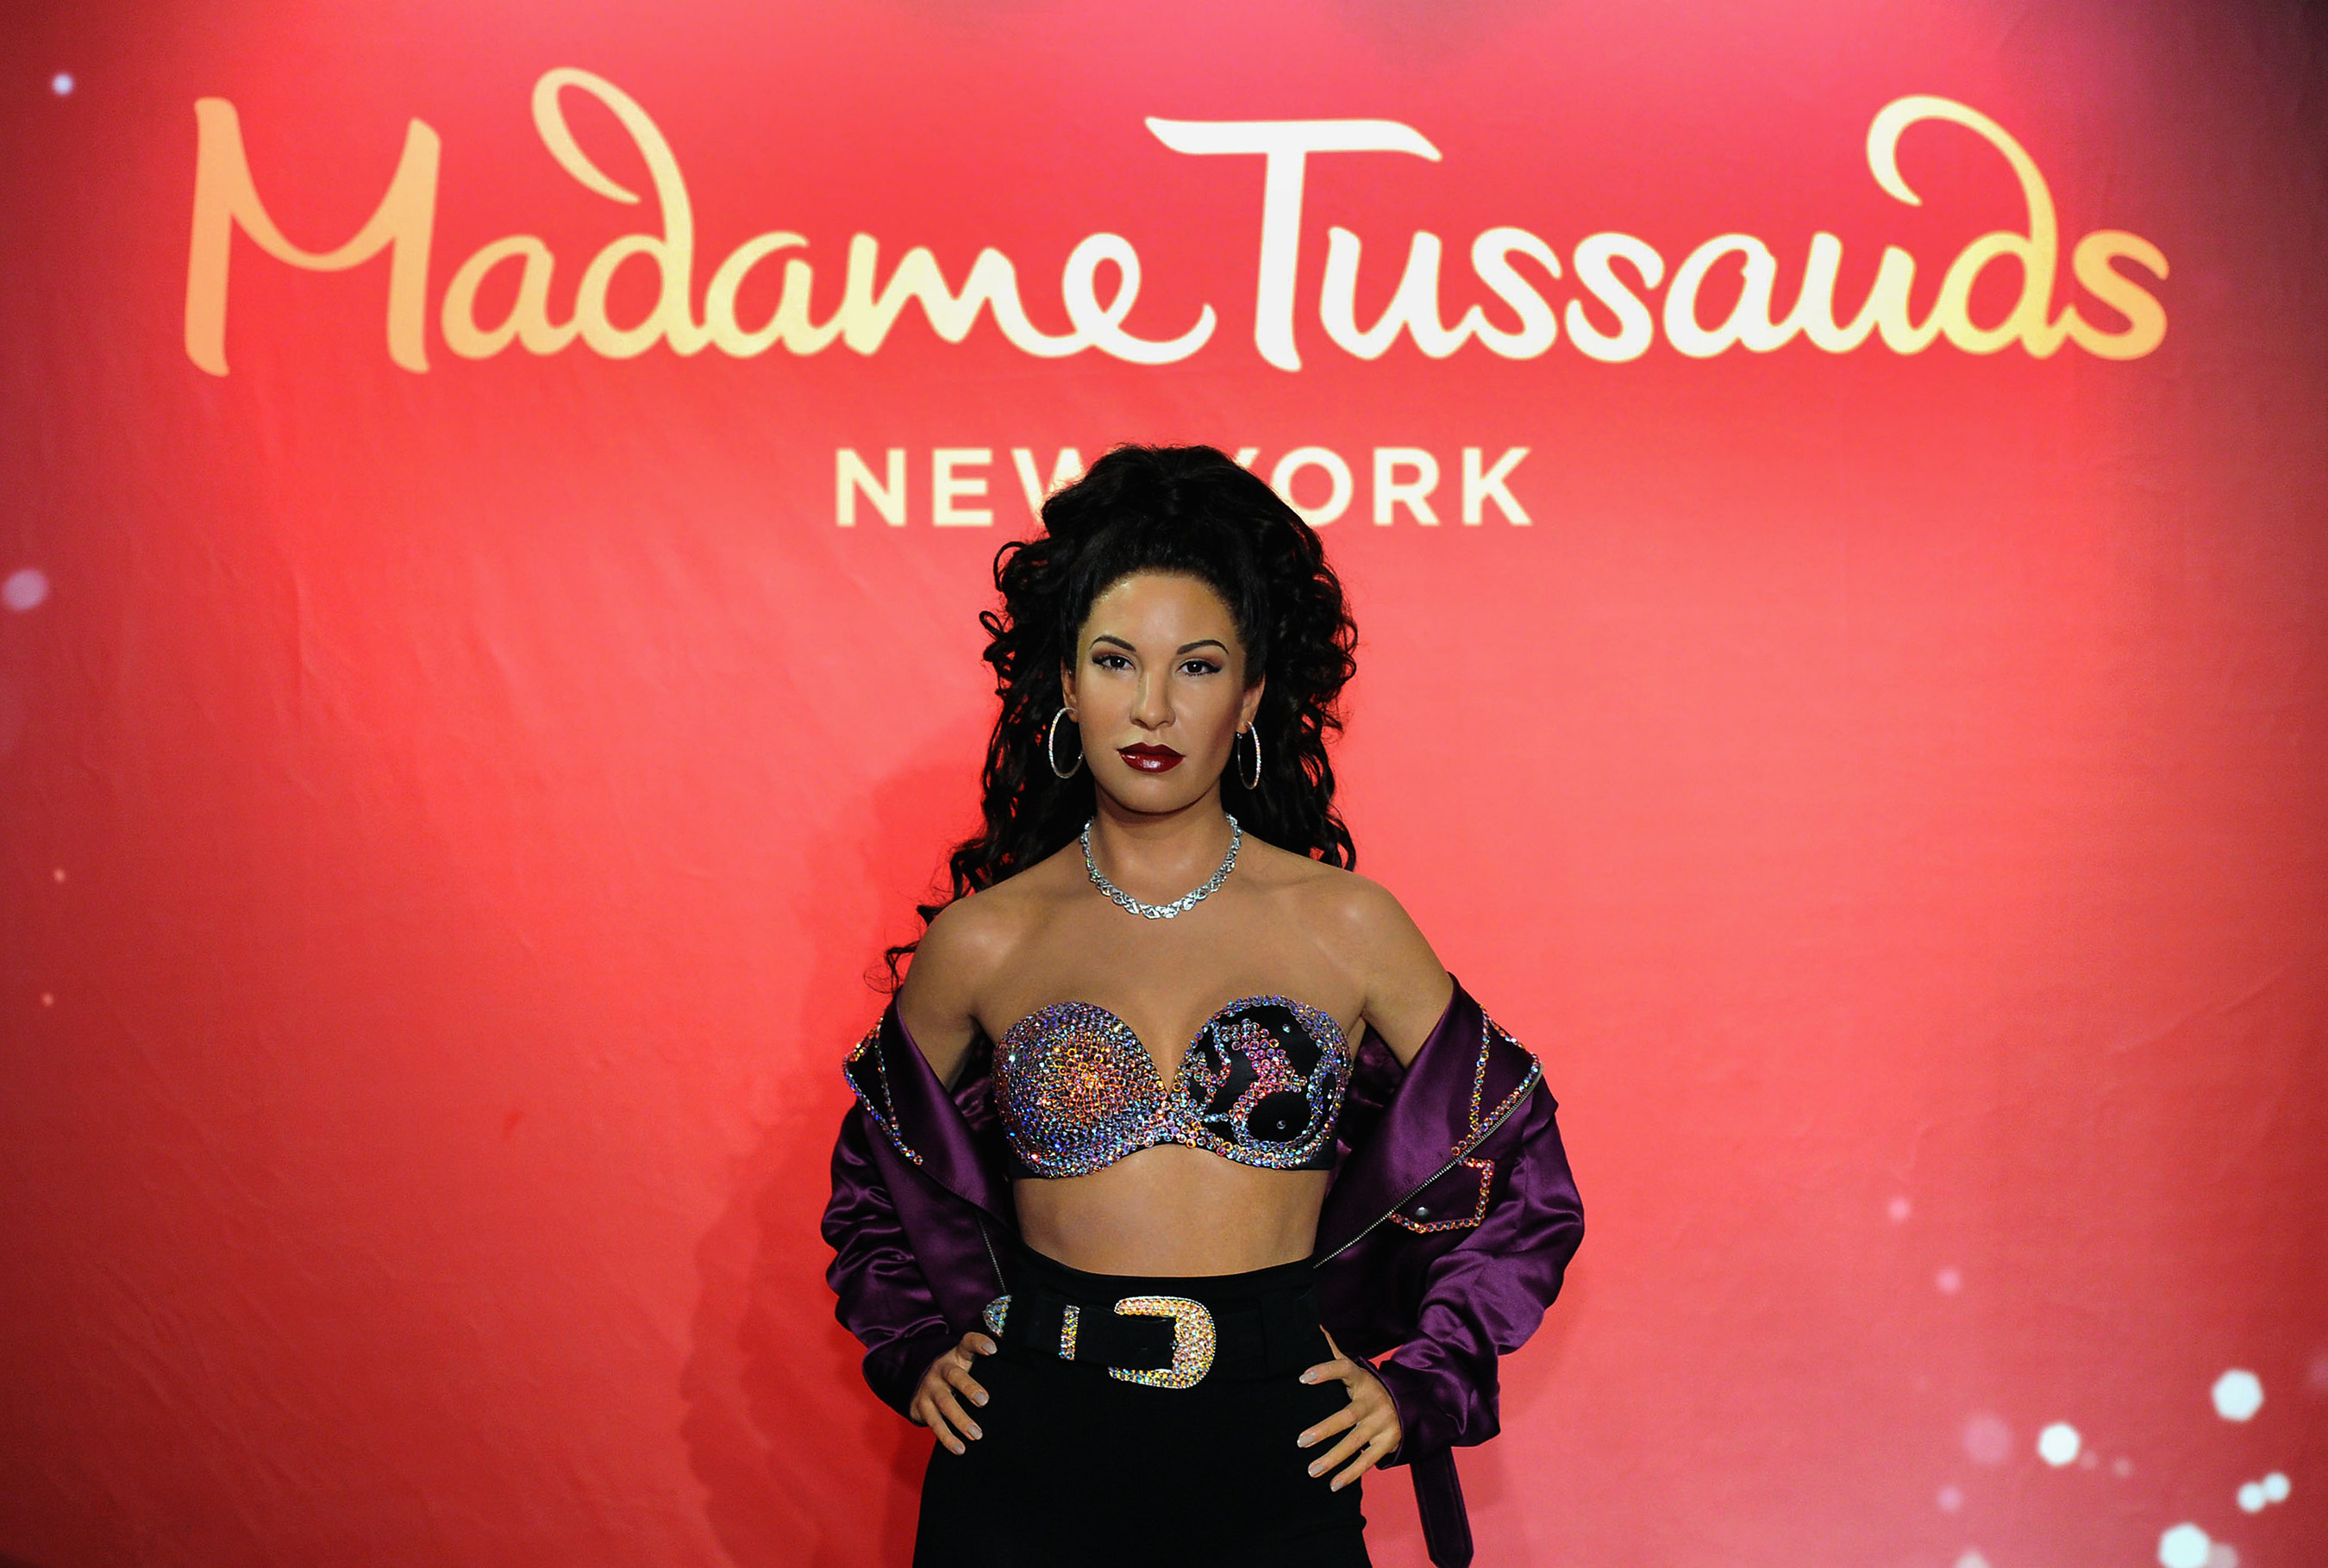 Selena Quintanilla, madam tussauds new york